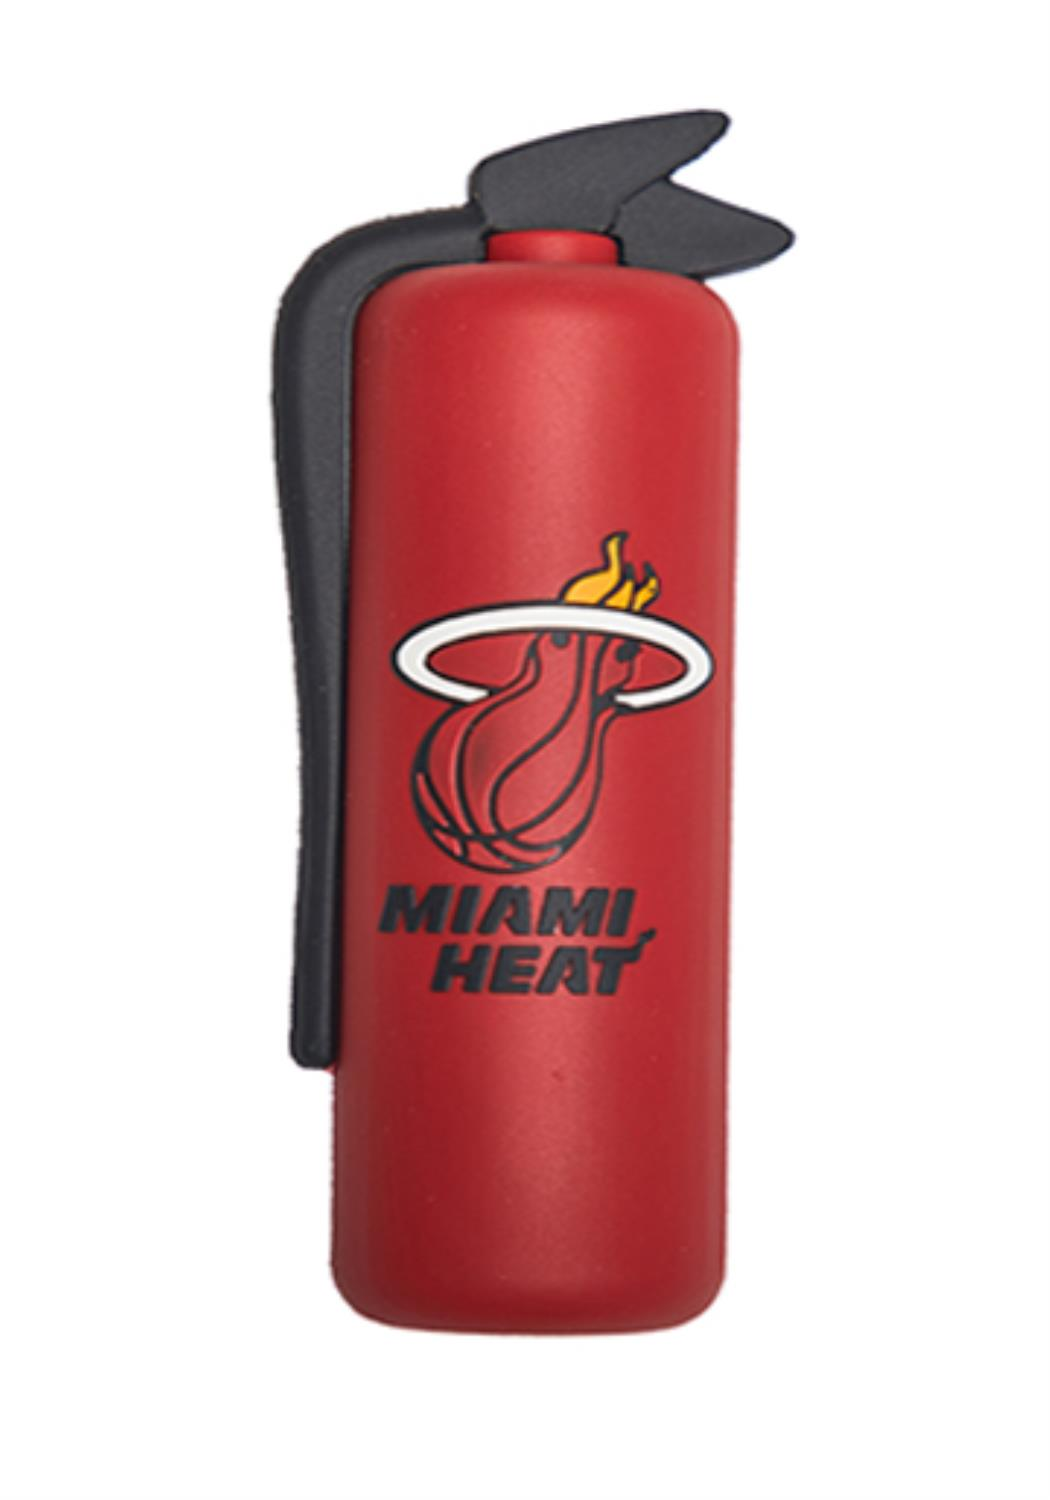 Miami Heat- Extinguisher - OFFICIAL NBA LICENSED PHONE CHARGER